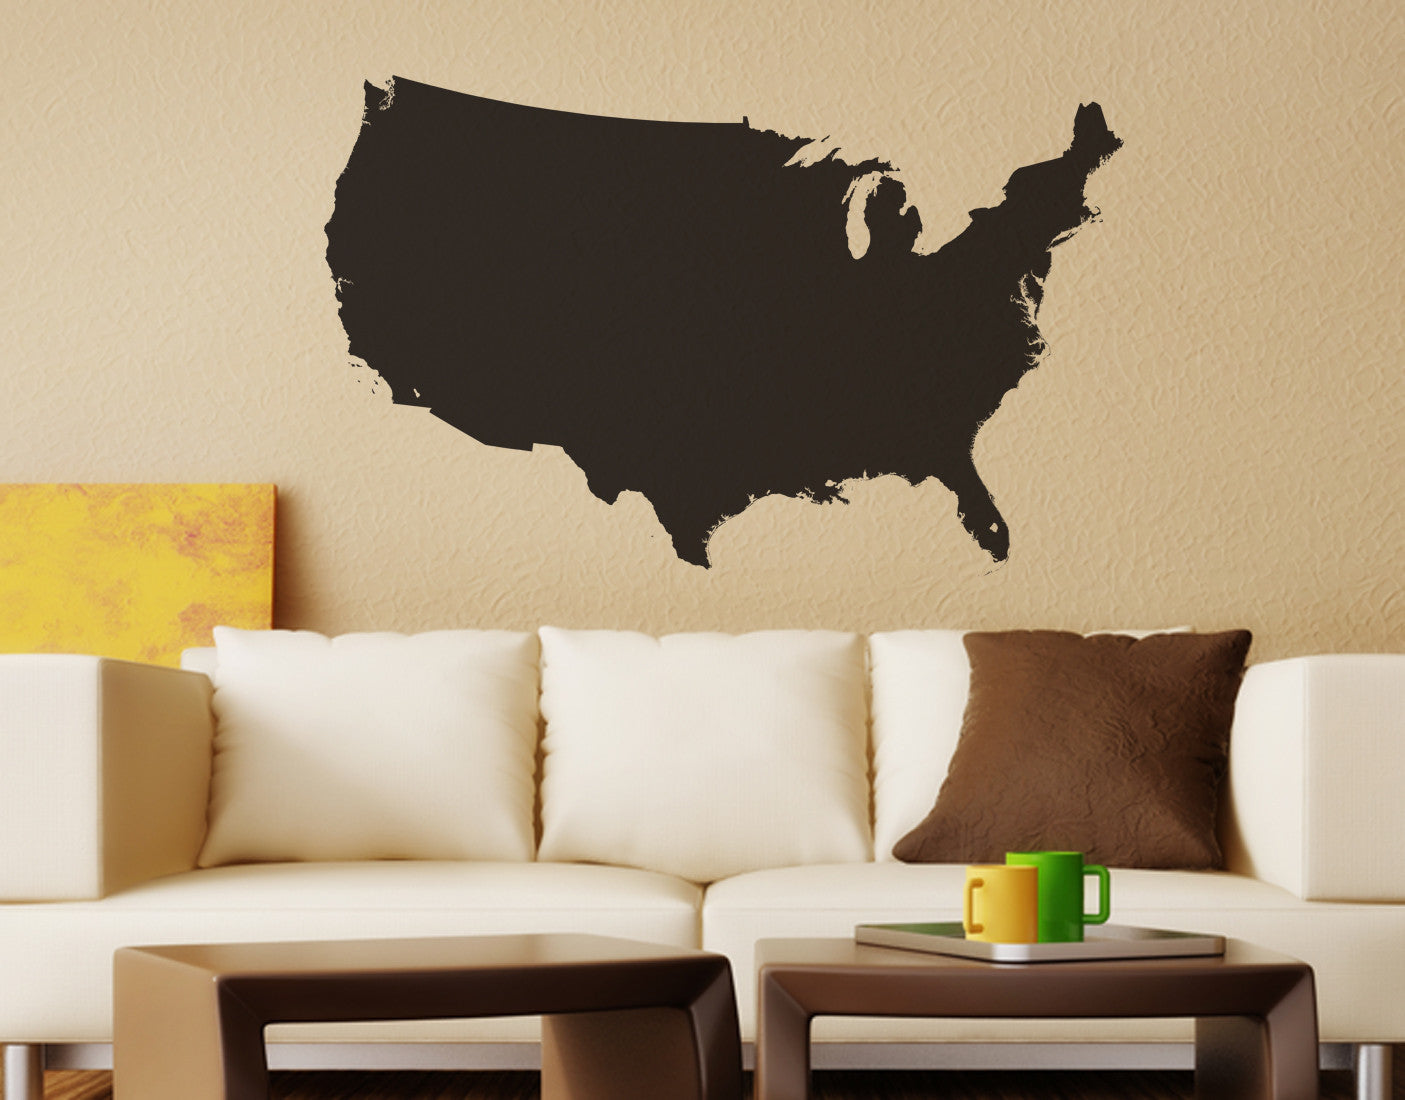 United States Of America USA Map Vinyl Wall Decal - Us map wall decal